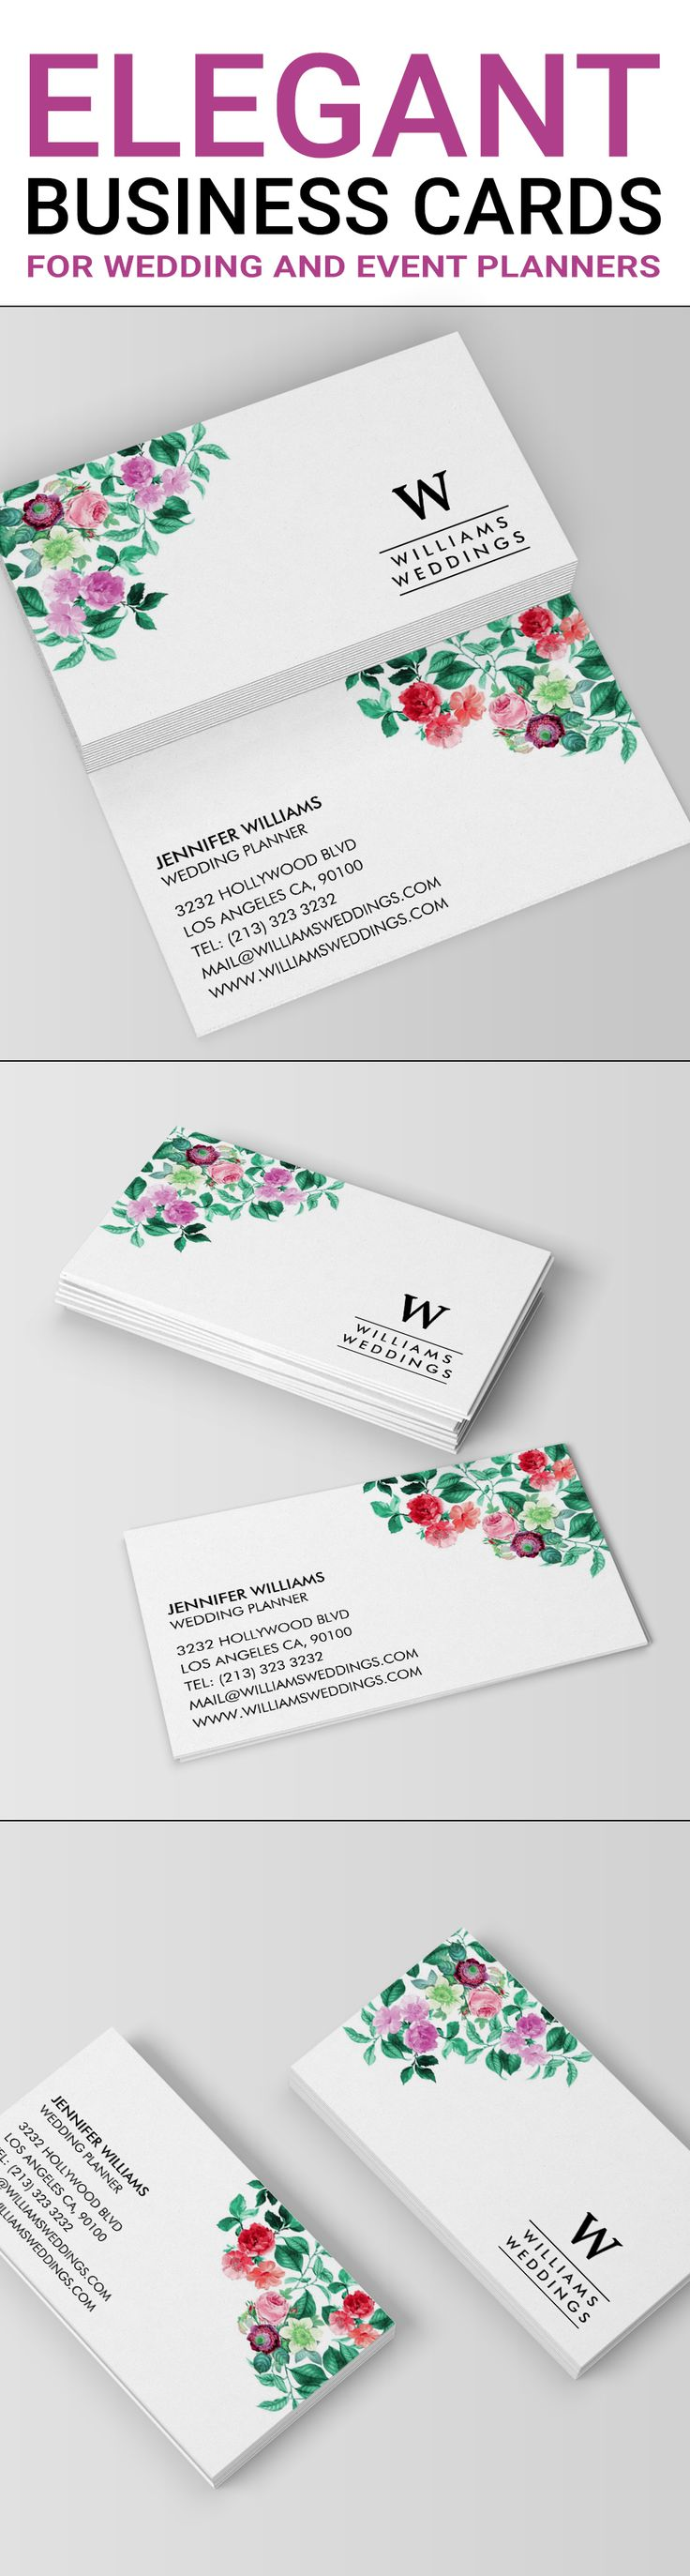 "I think this is just simple enough. It looks a lot like mine in terms of where the flowers are in the corner. I really like that the rest is black and white, it is so classic and lets the flowers really pop. I also like the simple font choices, the ""W"" looks almost bold. It really stands out and looks dependable, if a business card can look dependable."